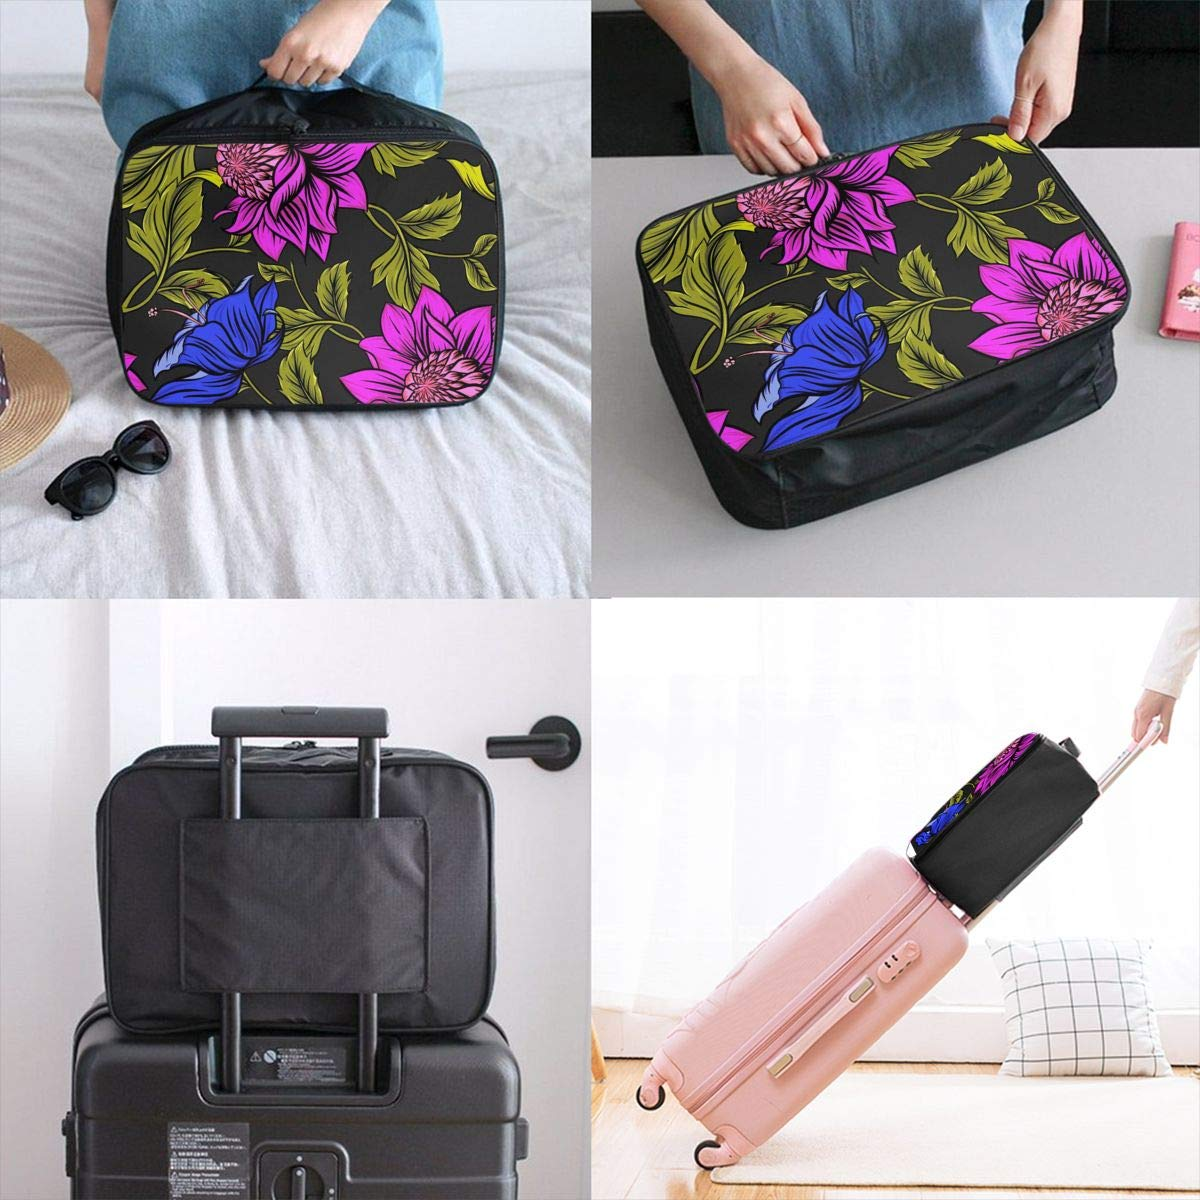 Flower Flower Plant Petals Travel Lightweight Waterproof Foldable Storage Carry Luggage Large Capacity Portable Luggage Bag Duffel Bag